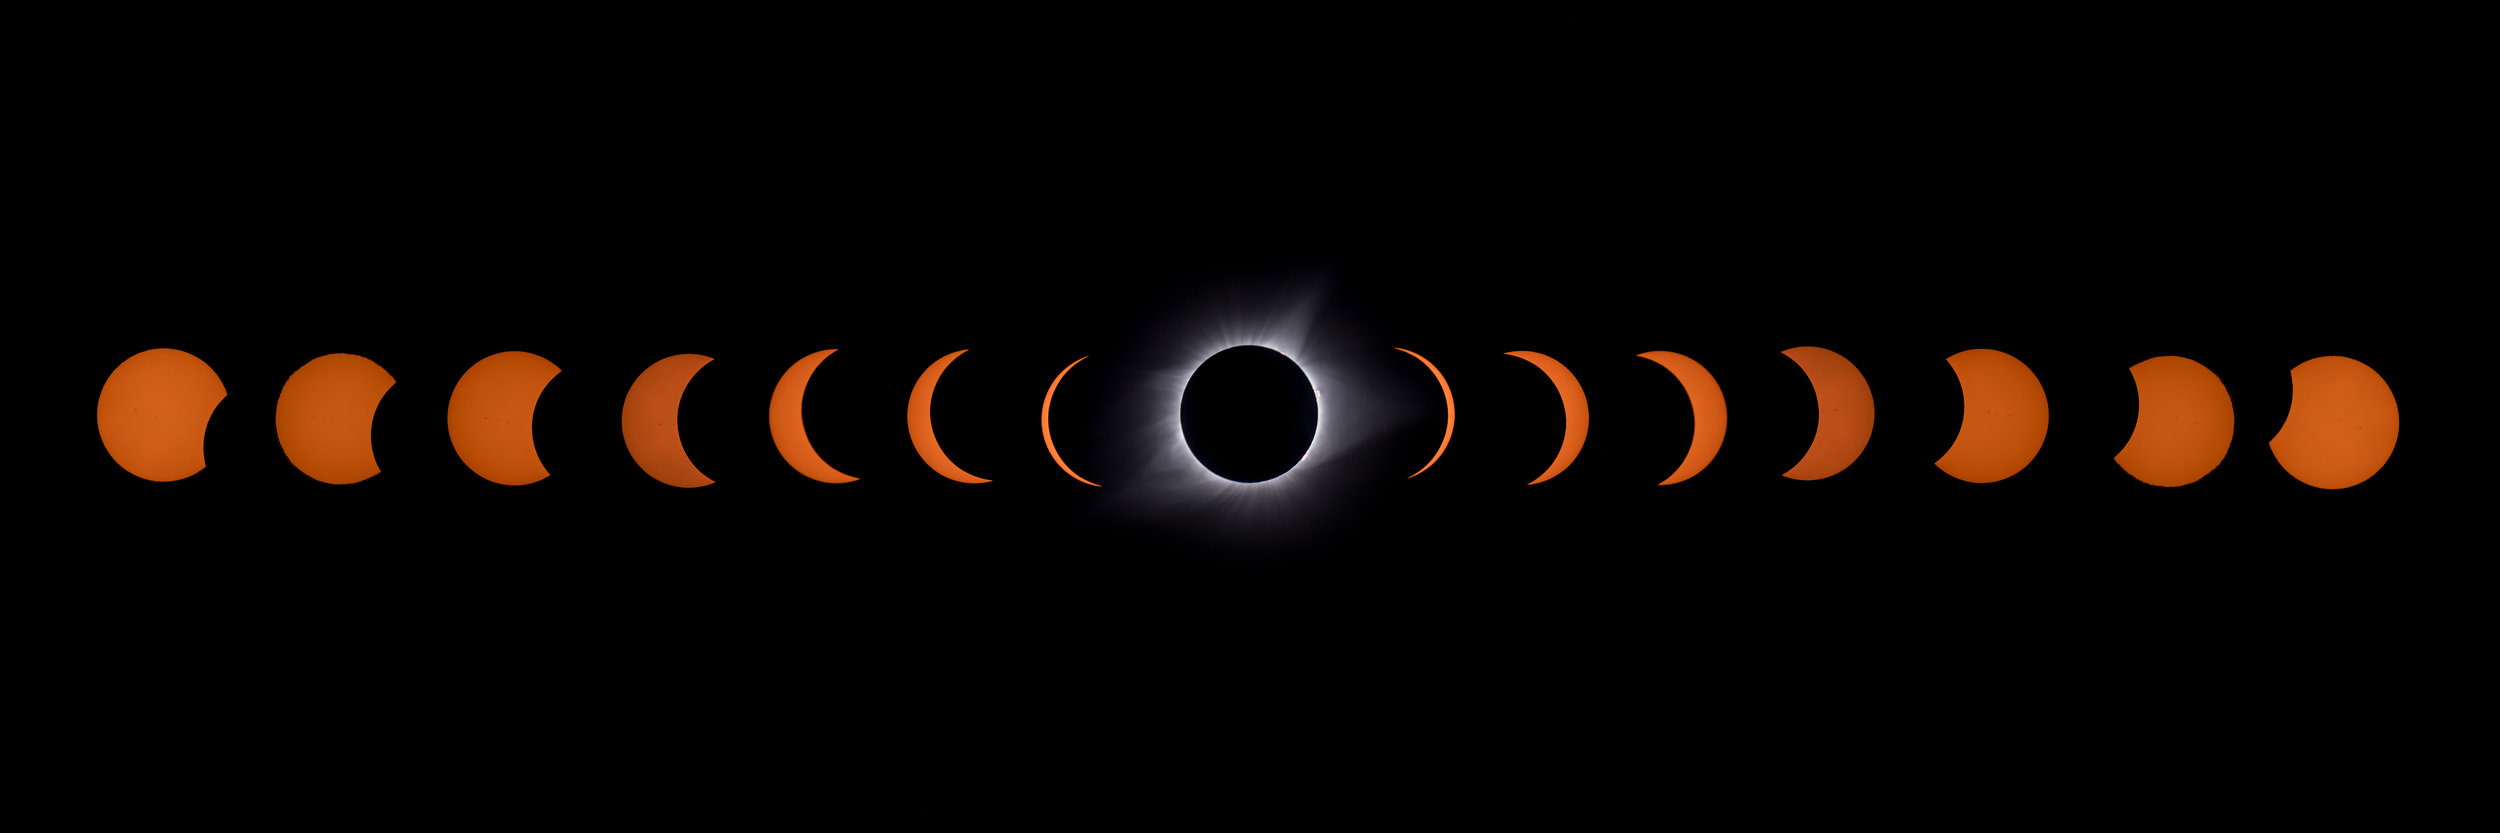 total eclipse sequence-01.jpg